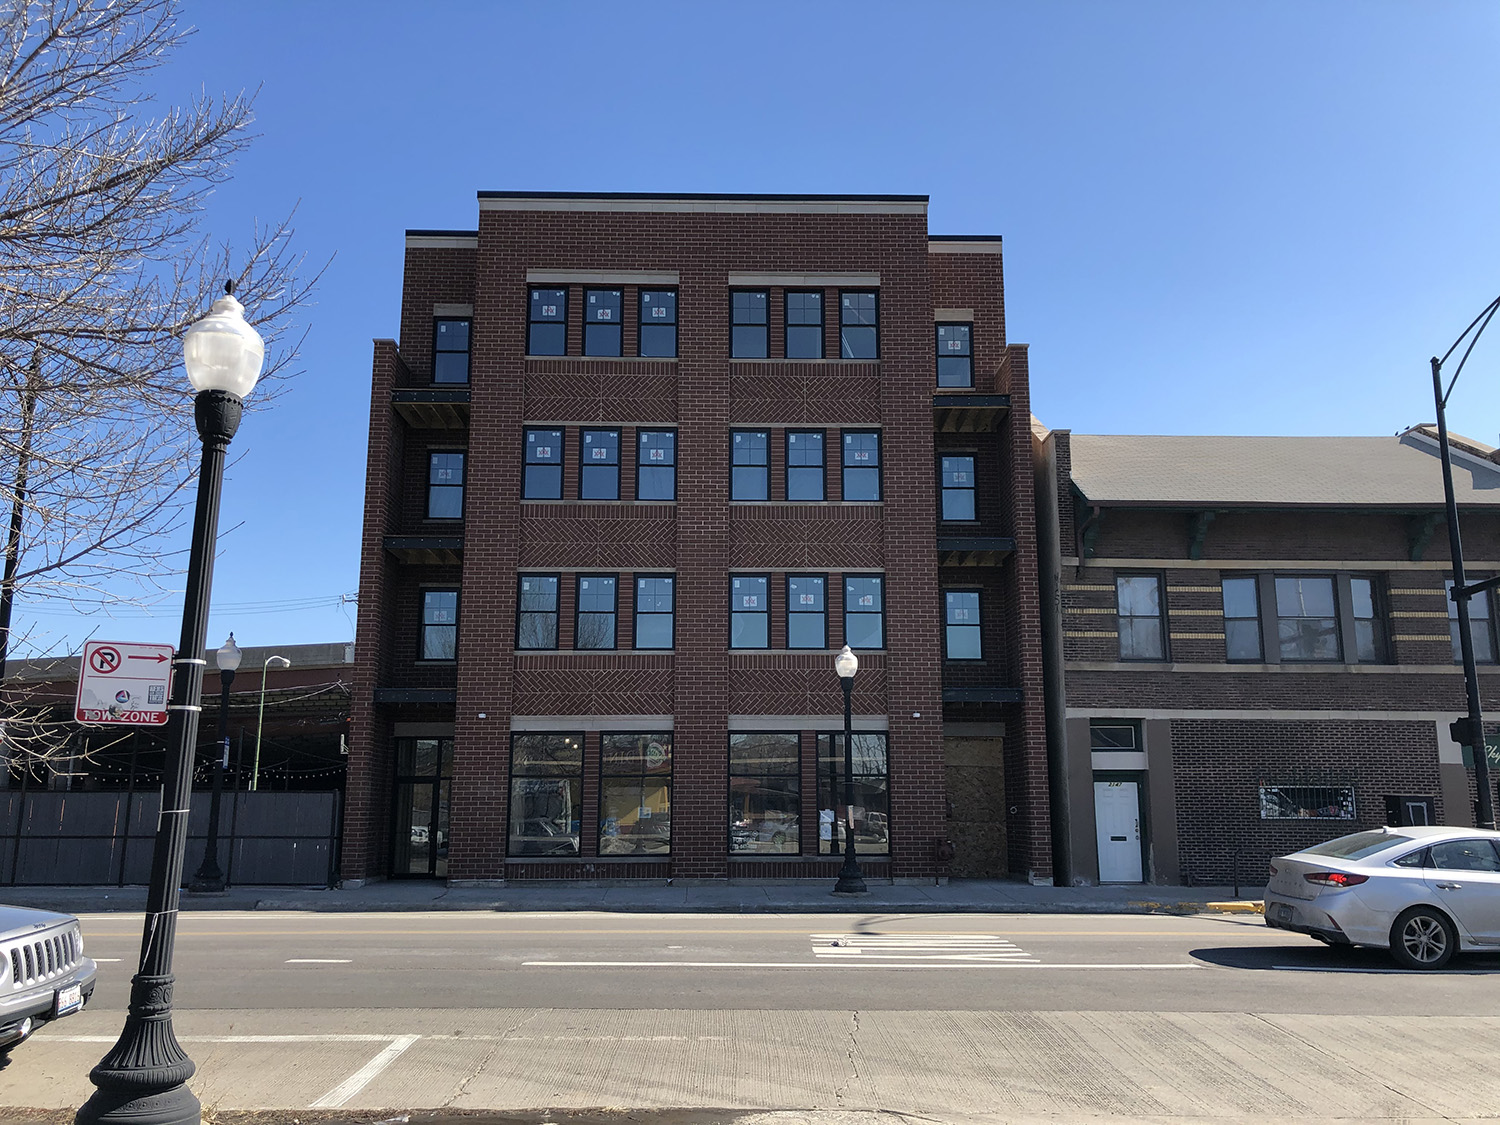 2145 S Halsted Street. Image by Lukas Kugler